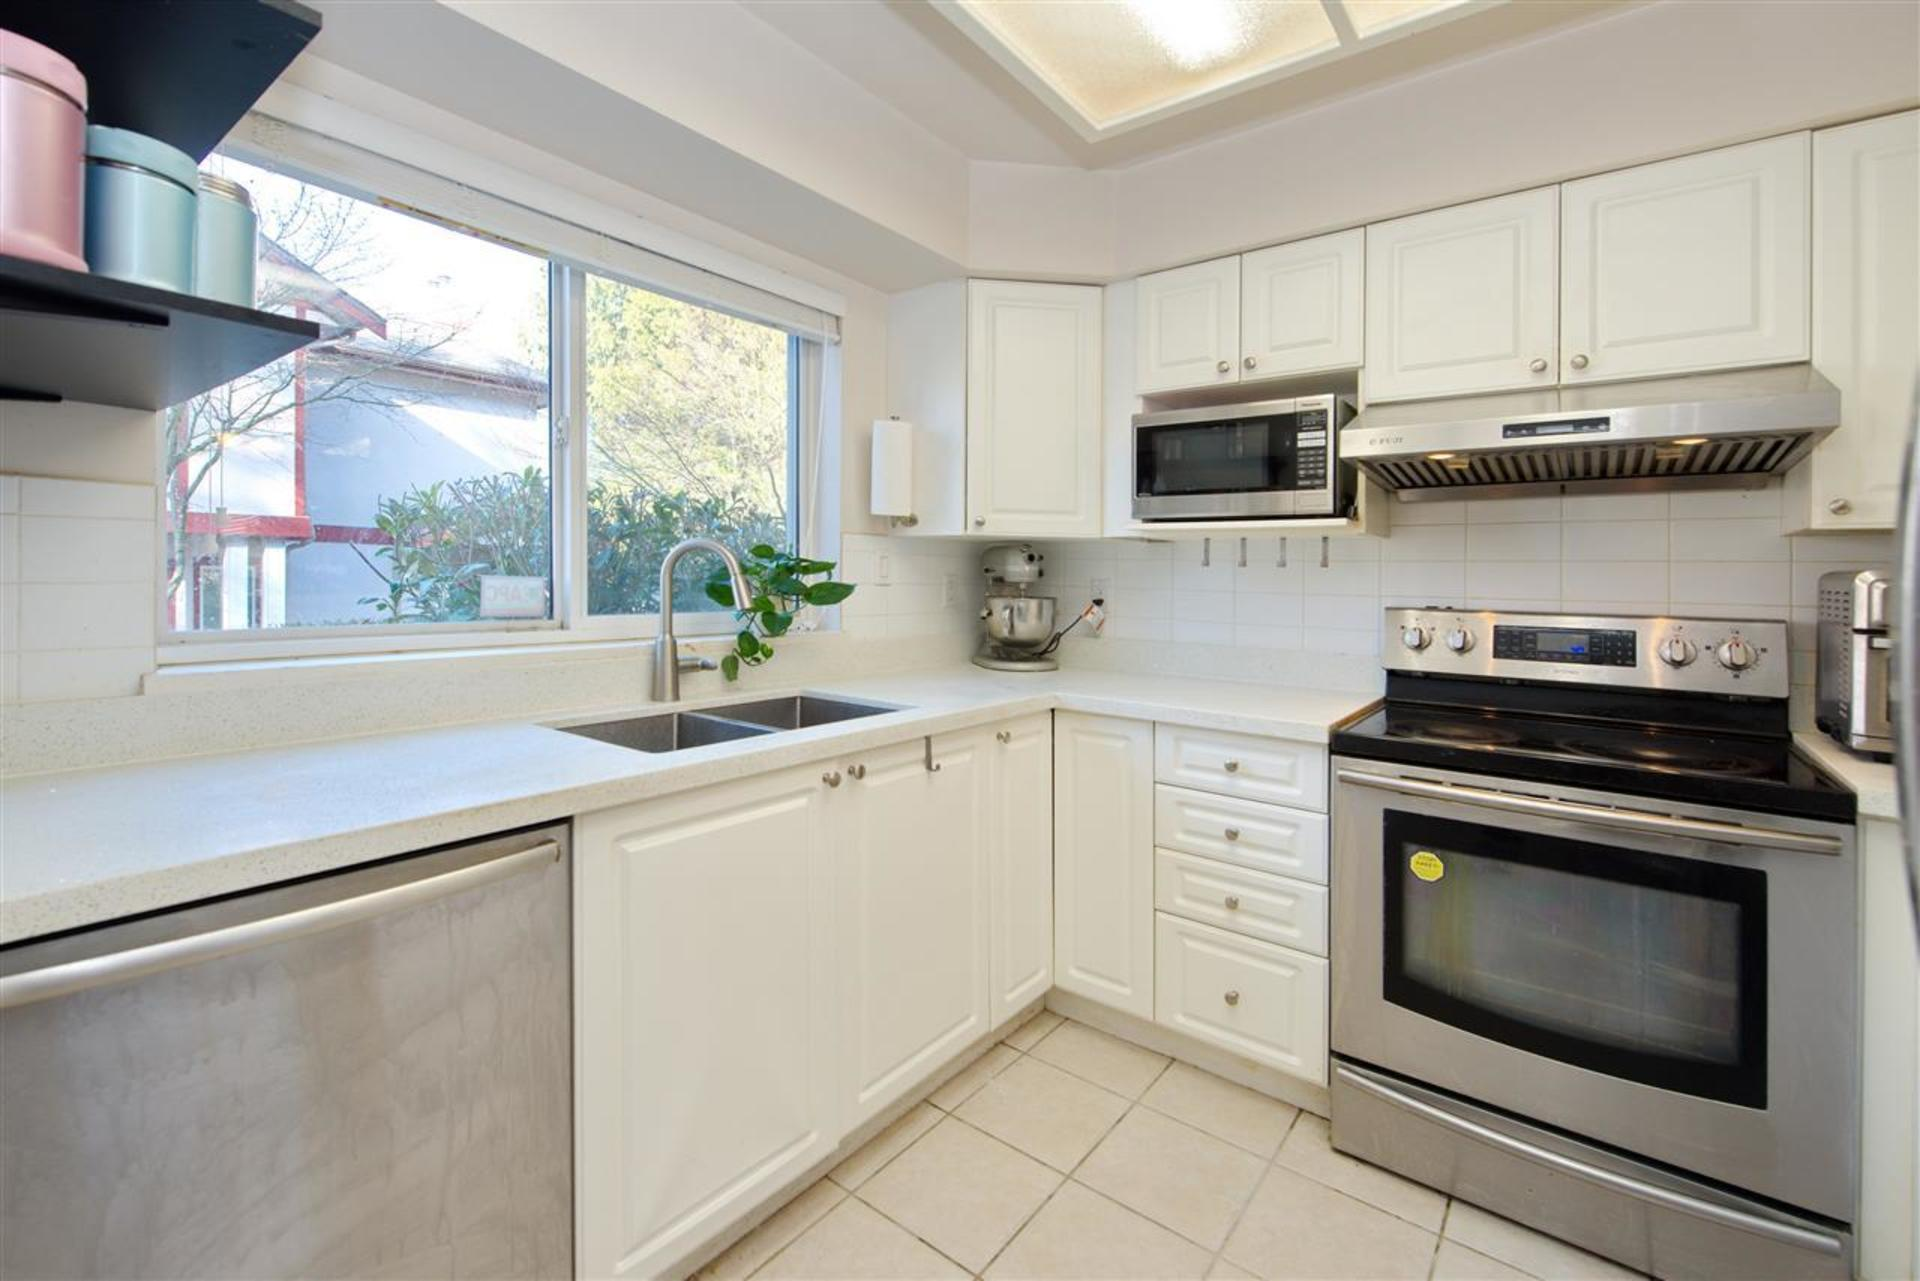 4238-bond-street-central-park-bs-burnaby-south-10 at 13 - 4238 Bond Street, Central Park BS, Burnaby South